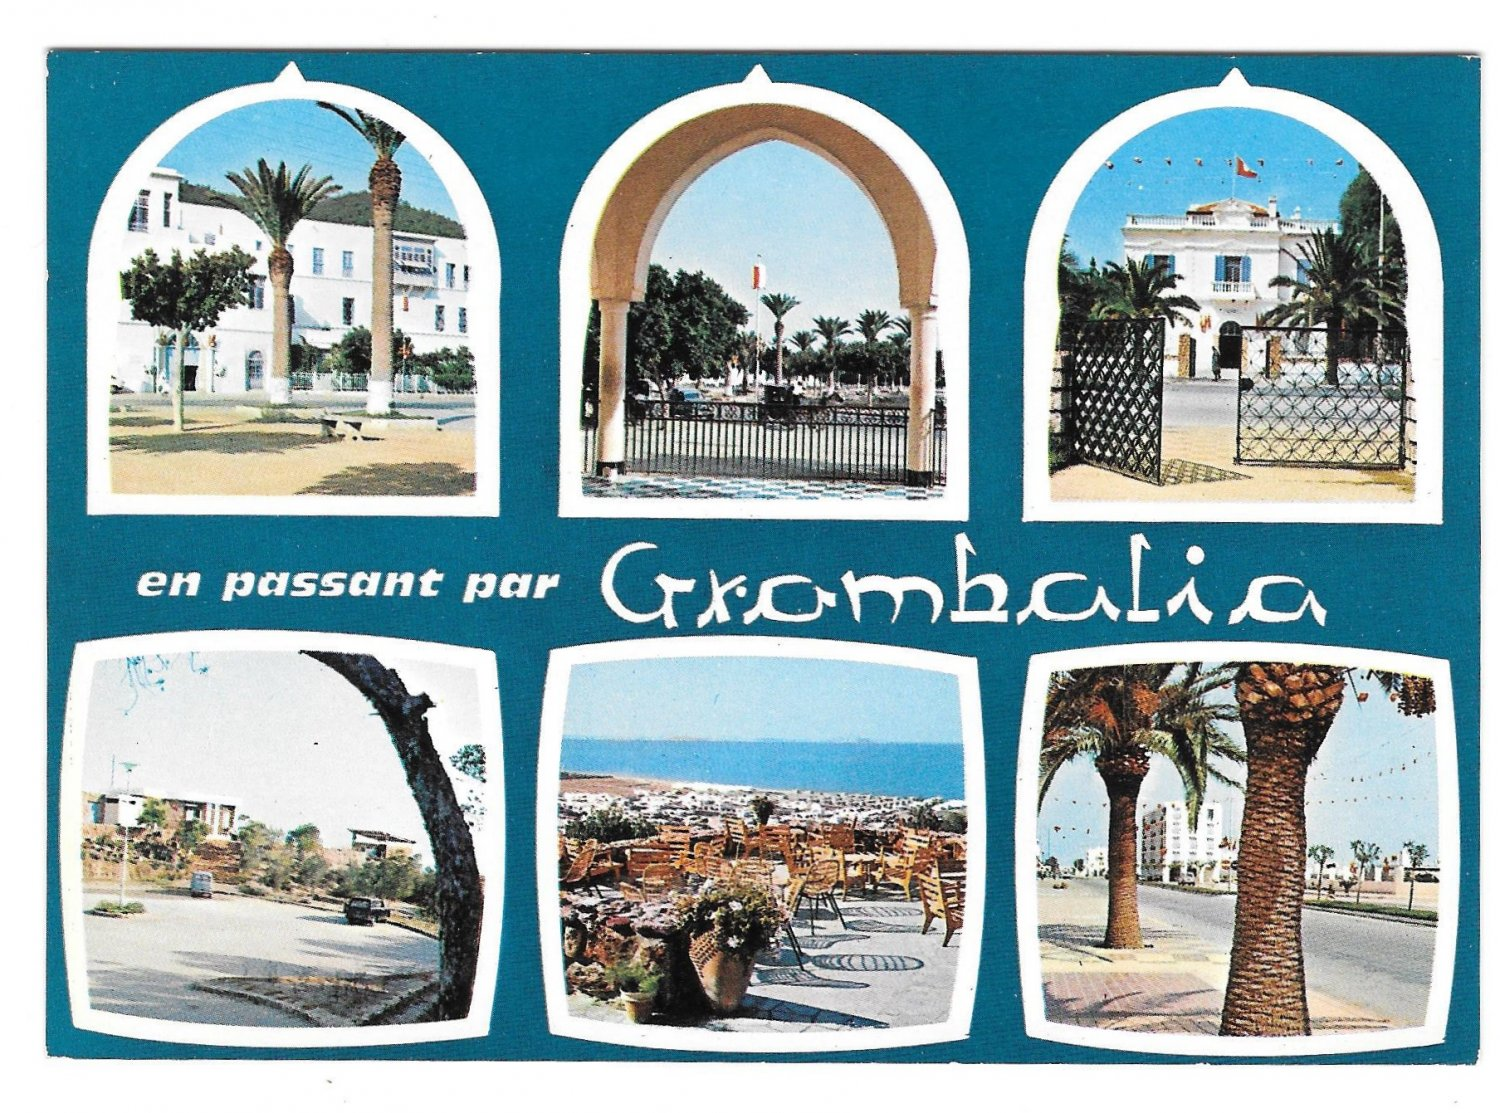 Africa Grombolia Tunisia Nabeul Multiview Vintage H. Ismail Postcard 4X6